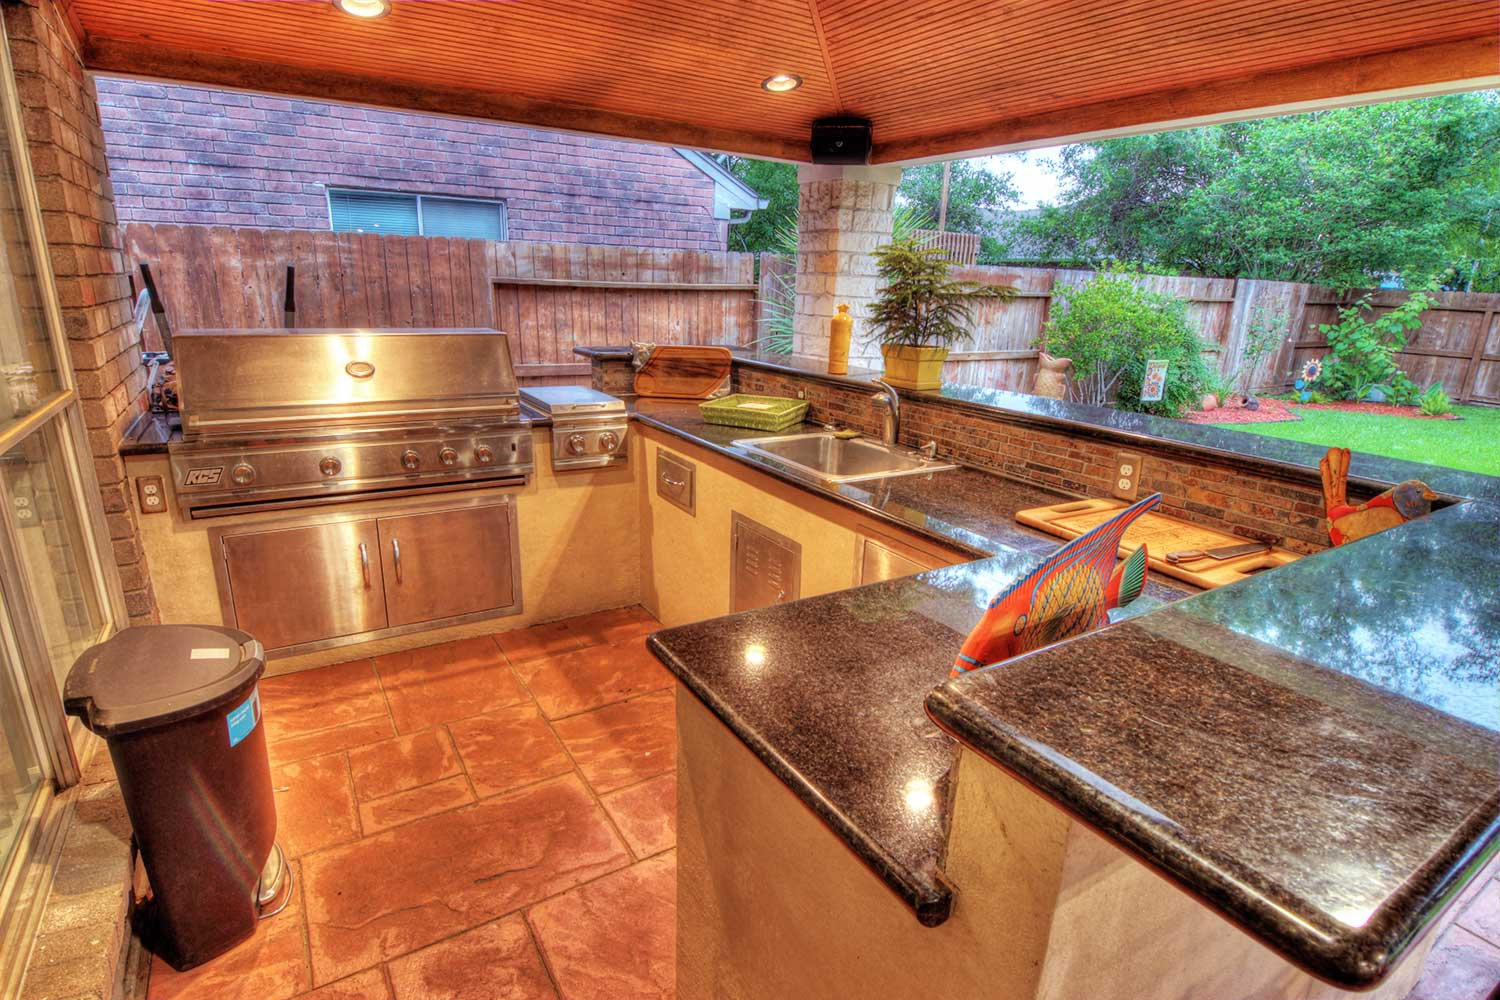 Patio Cover With Brick Columns And Outdoor Kitchen Houston